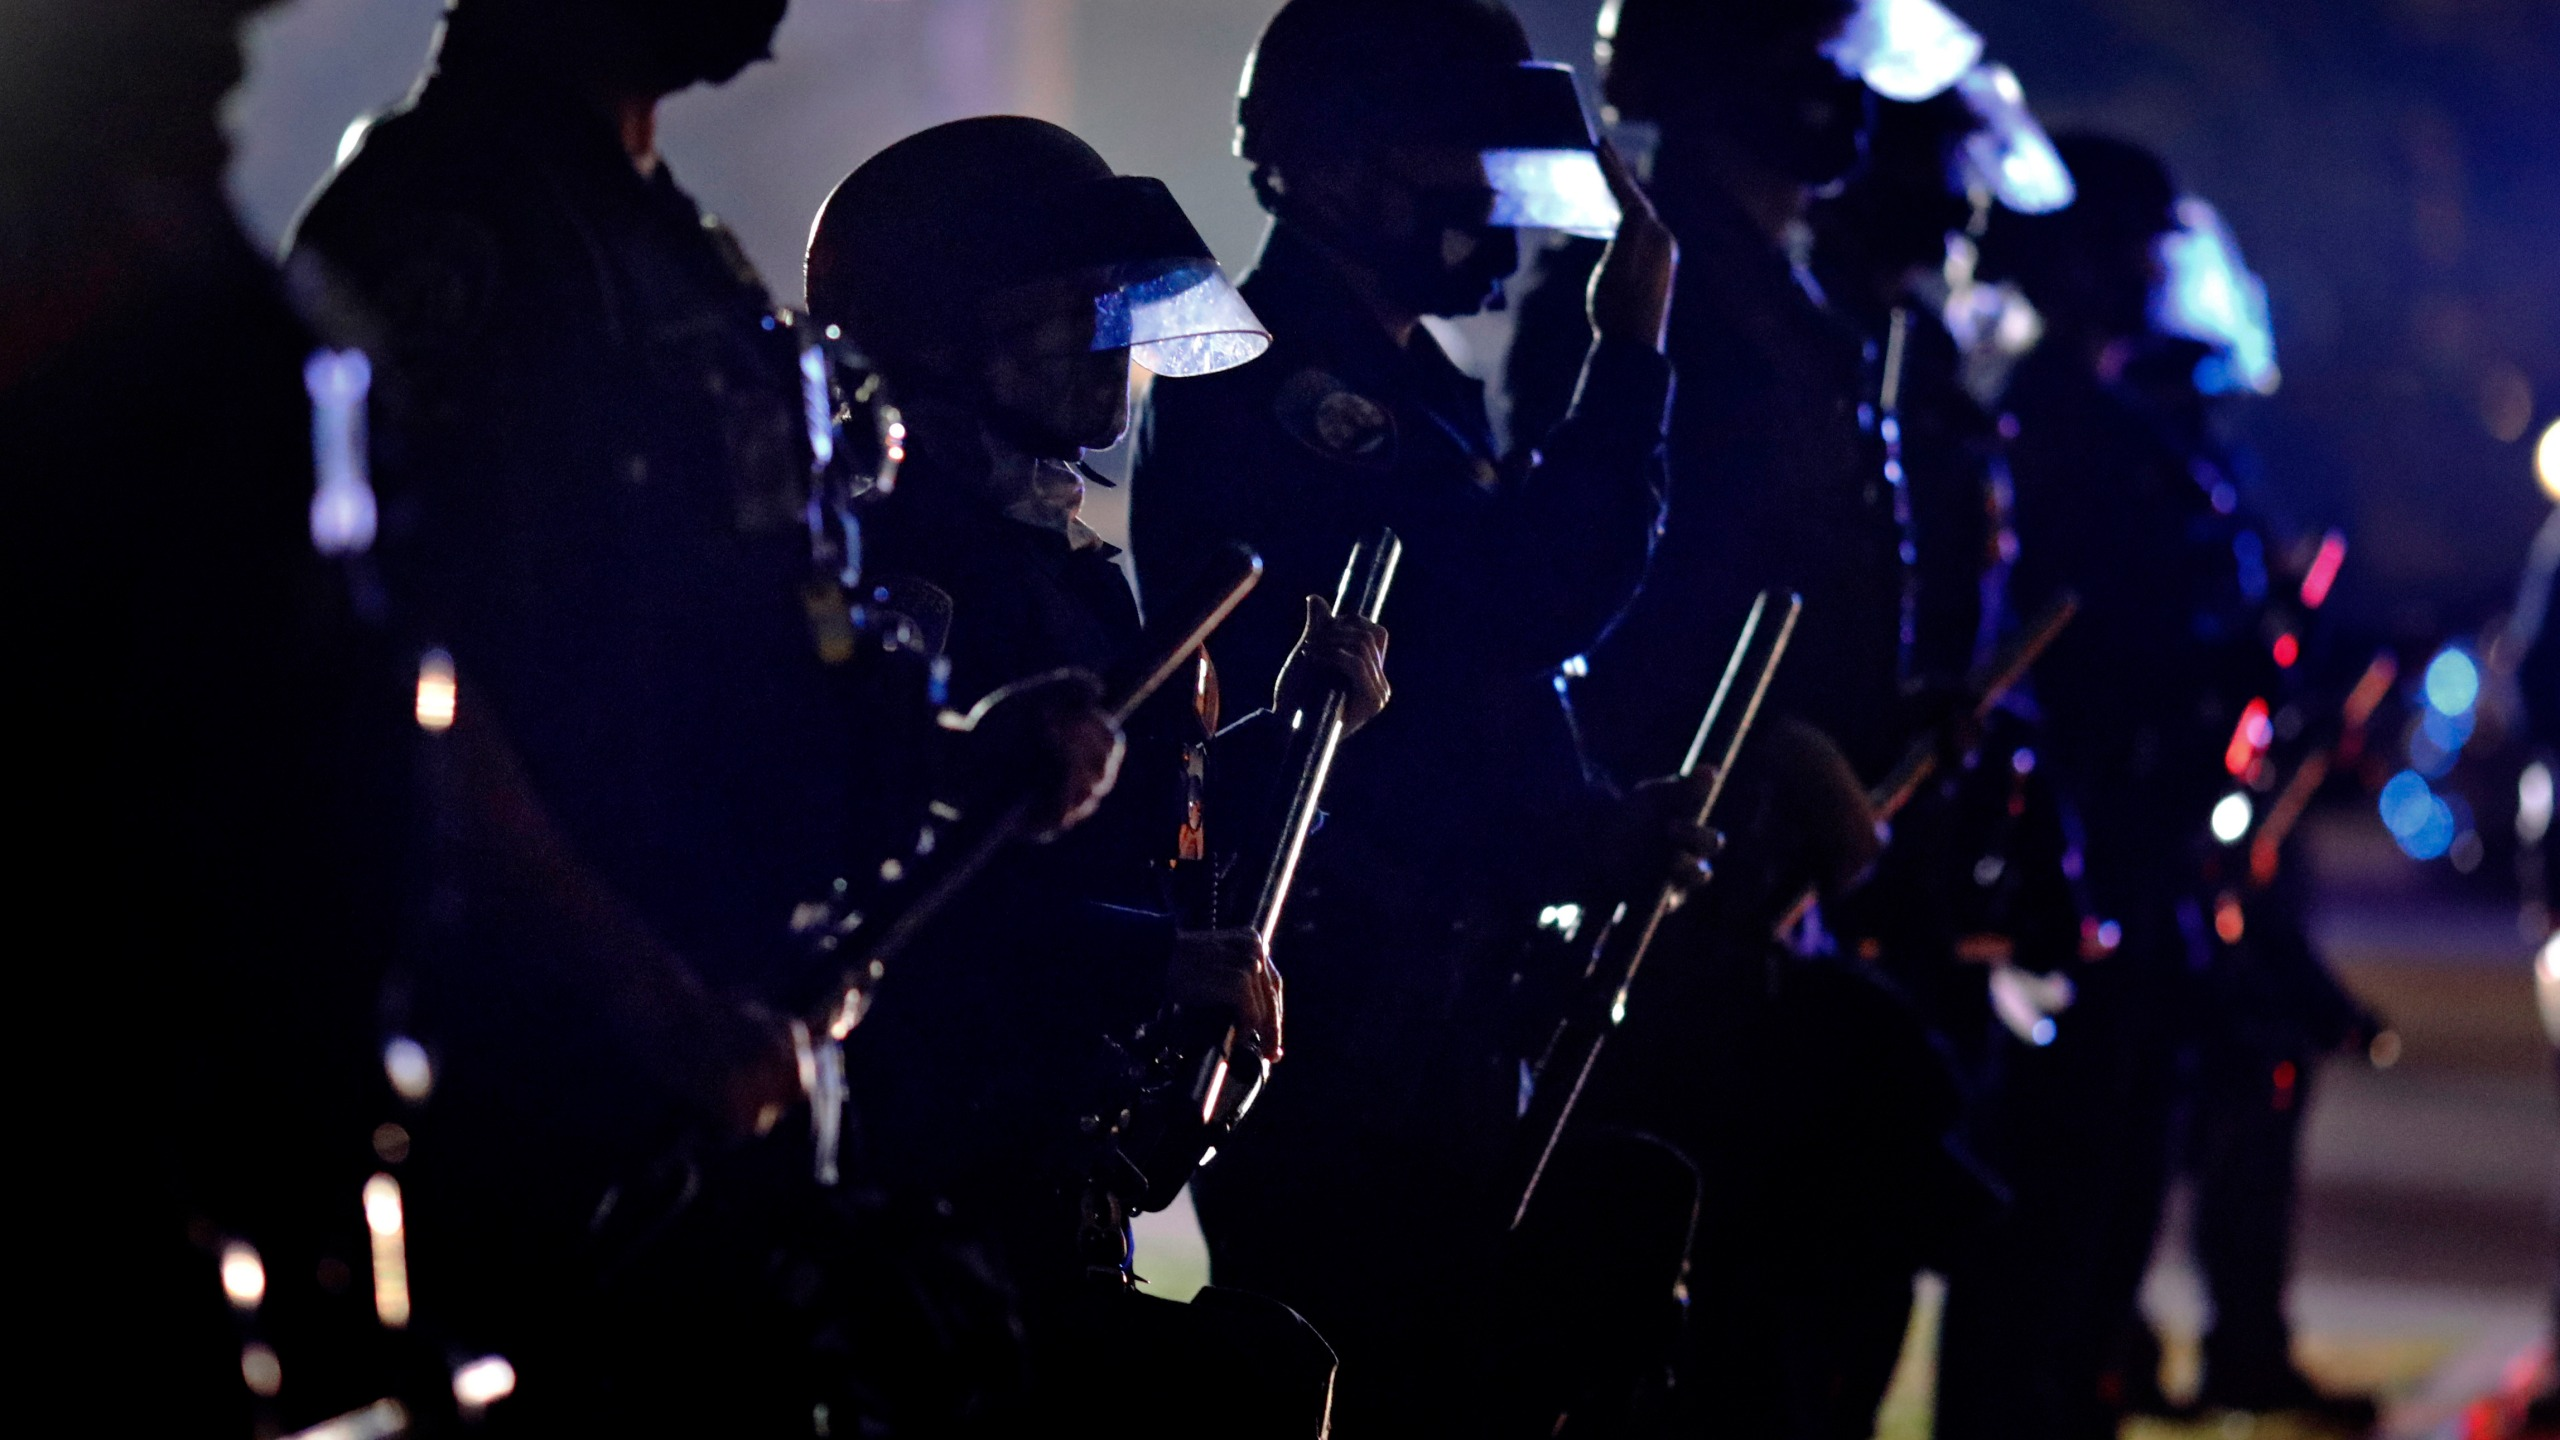 In this Tuesday, Nov. 3, 2020, file photo, police hold their clubs as they form a line in front of supporters of President Donald Trump on Election Day in Beverly Hills, Calif. (AP Photo/Ringo H.W. Chiu, File)